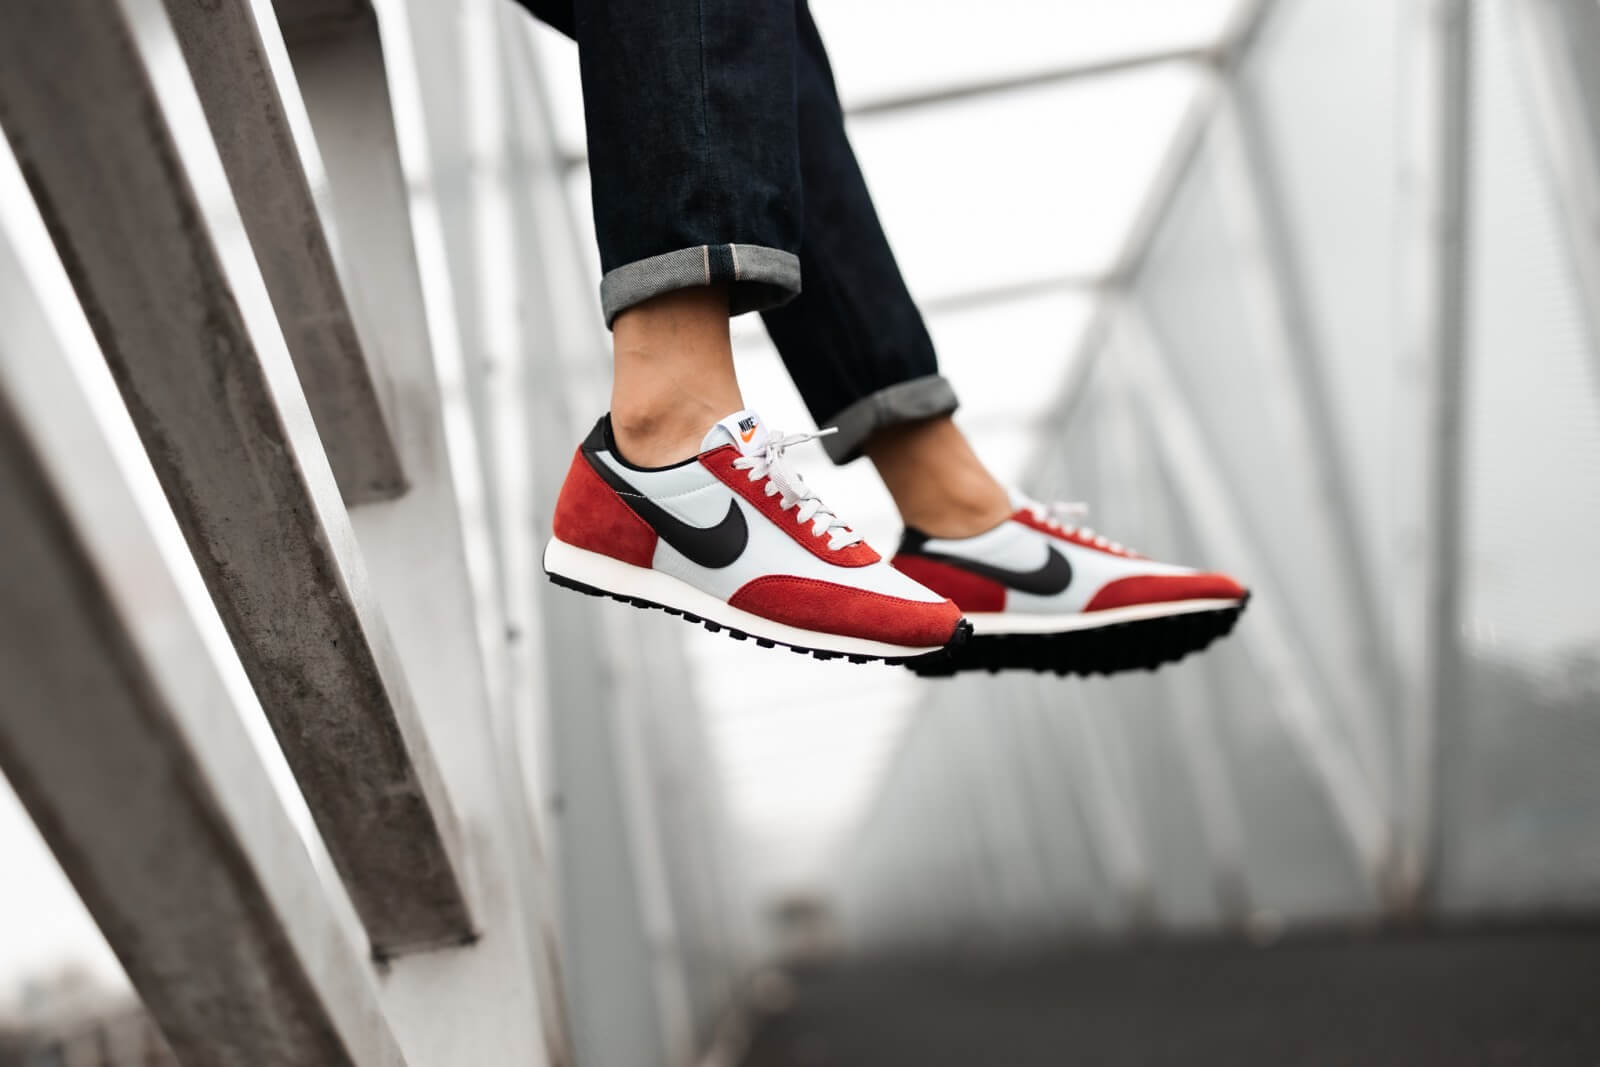 Nike Daybreak - Pure Platinum/Black/Gym Red/Sail #DB4635-001-Preorder Item-Navy Selected Shop